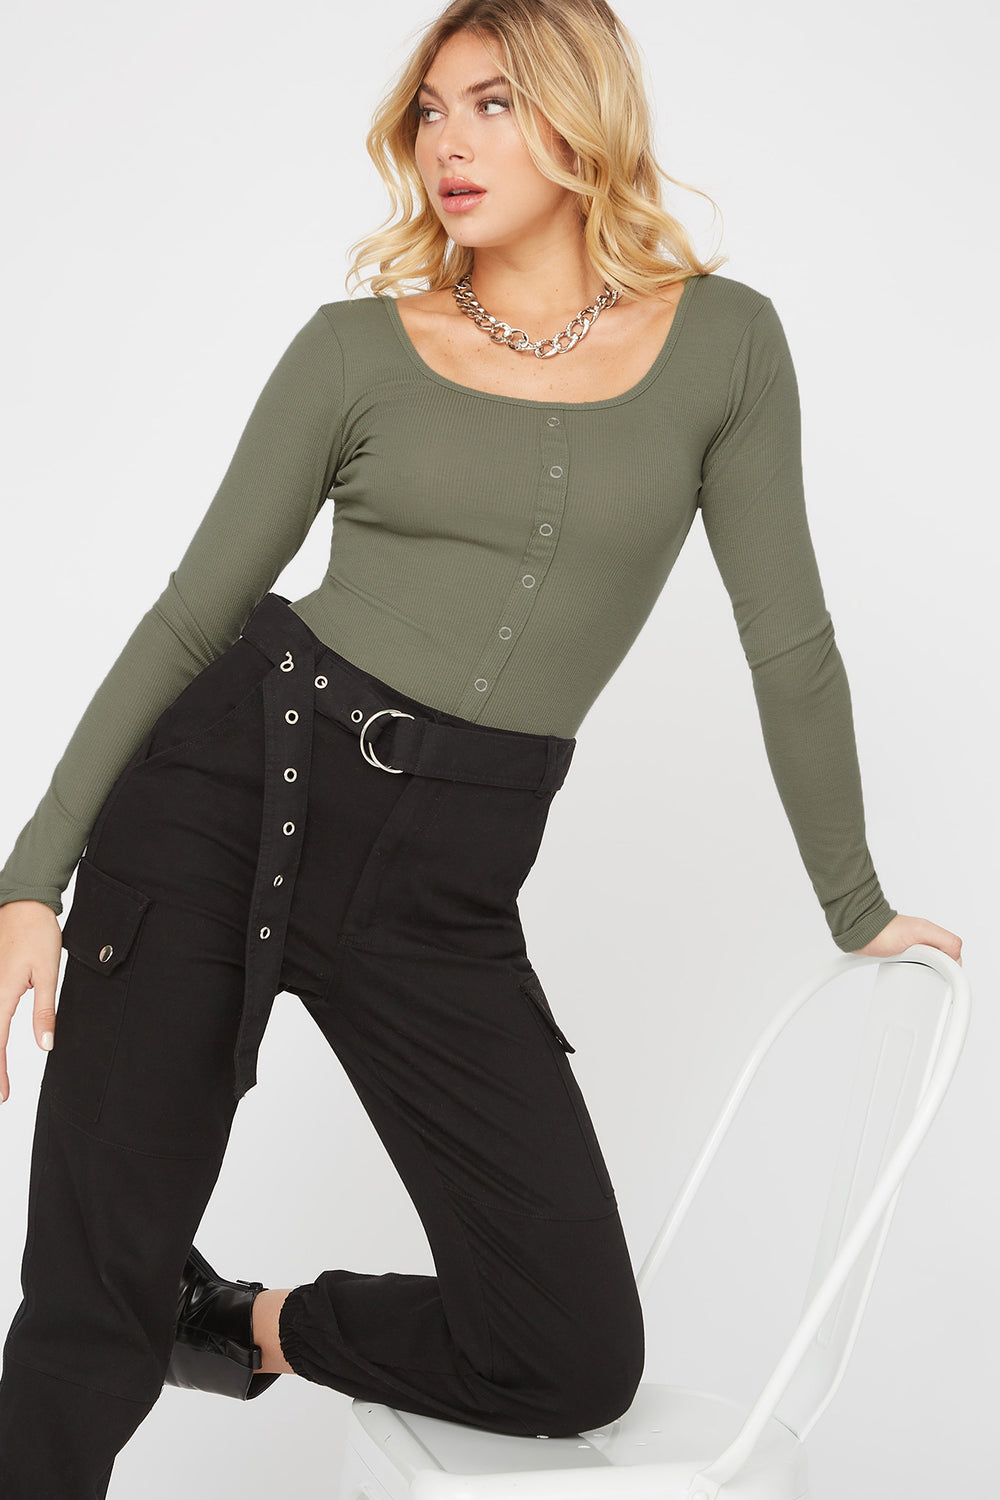 Ribbed Square Neck Snap Button Long Sleeve Dark Green